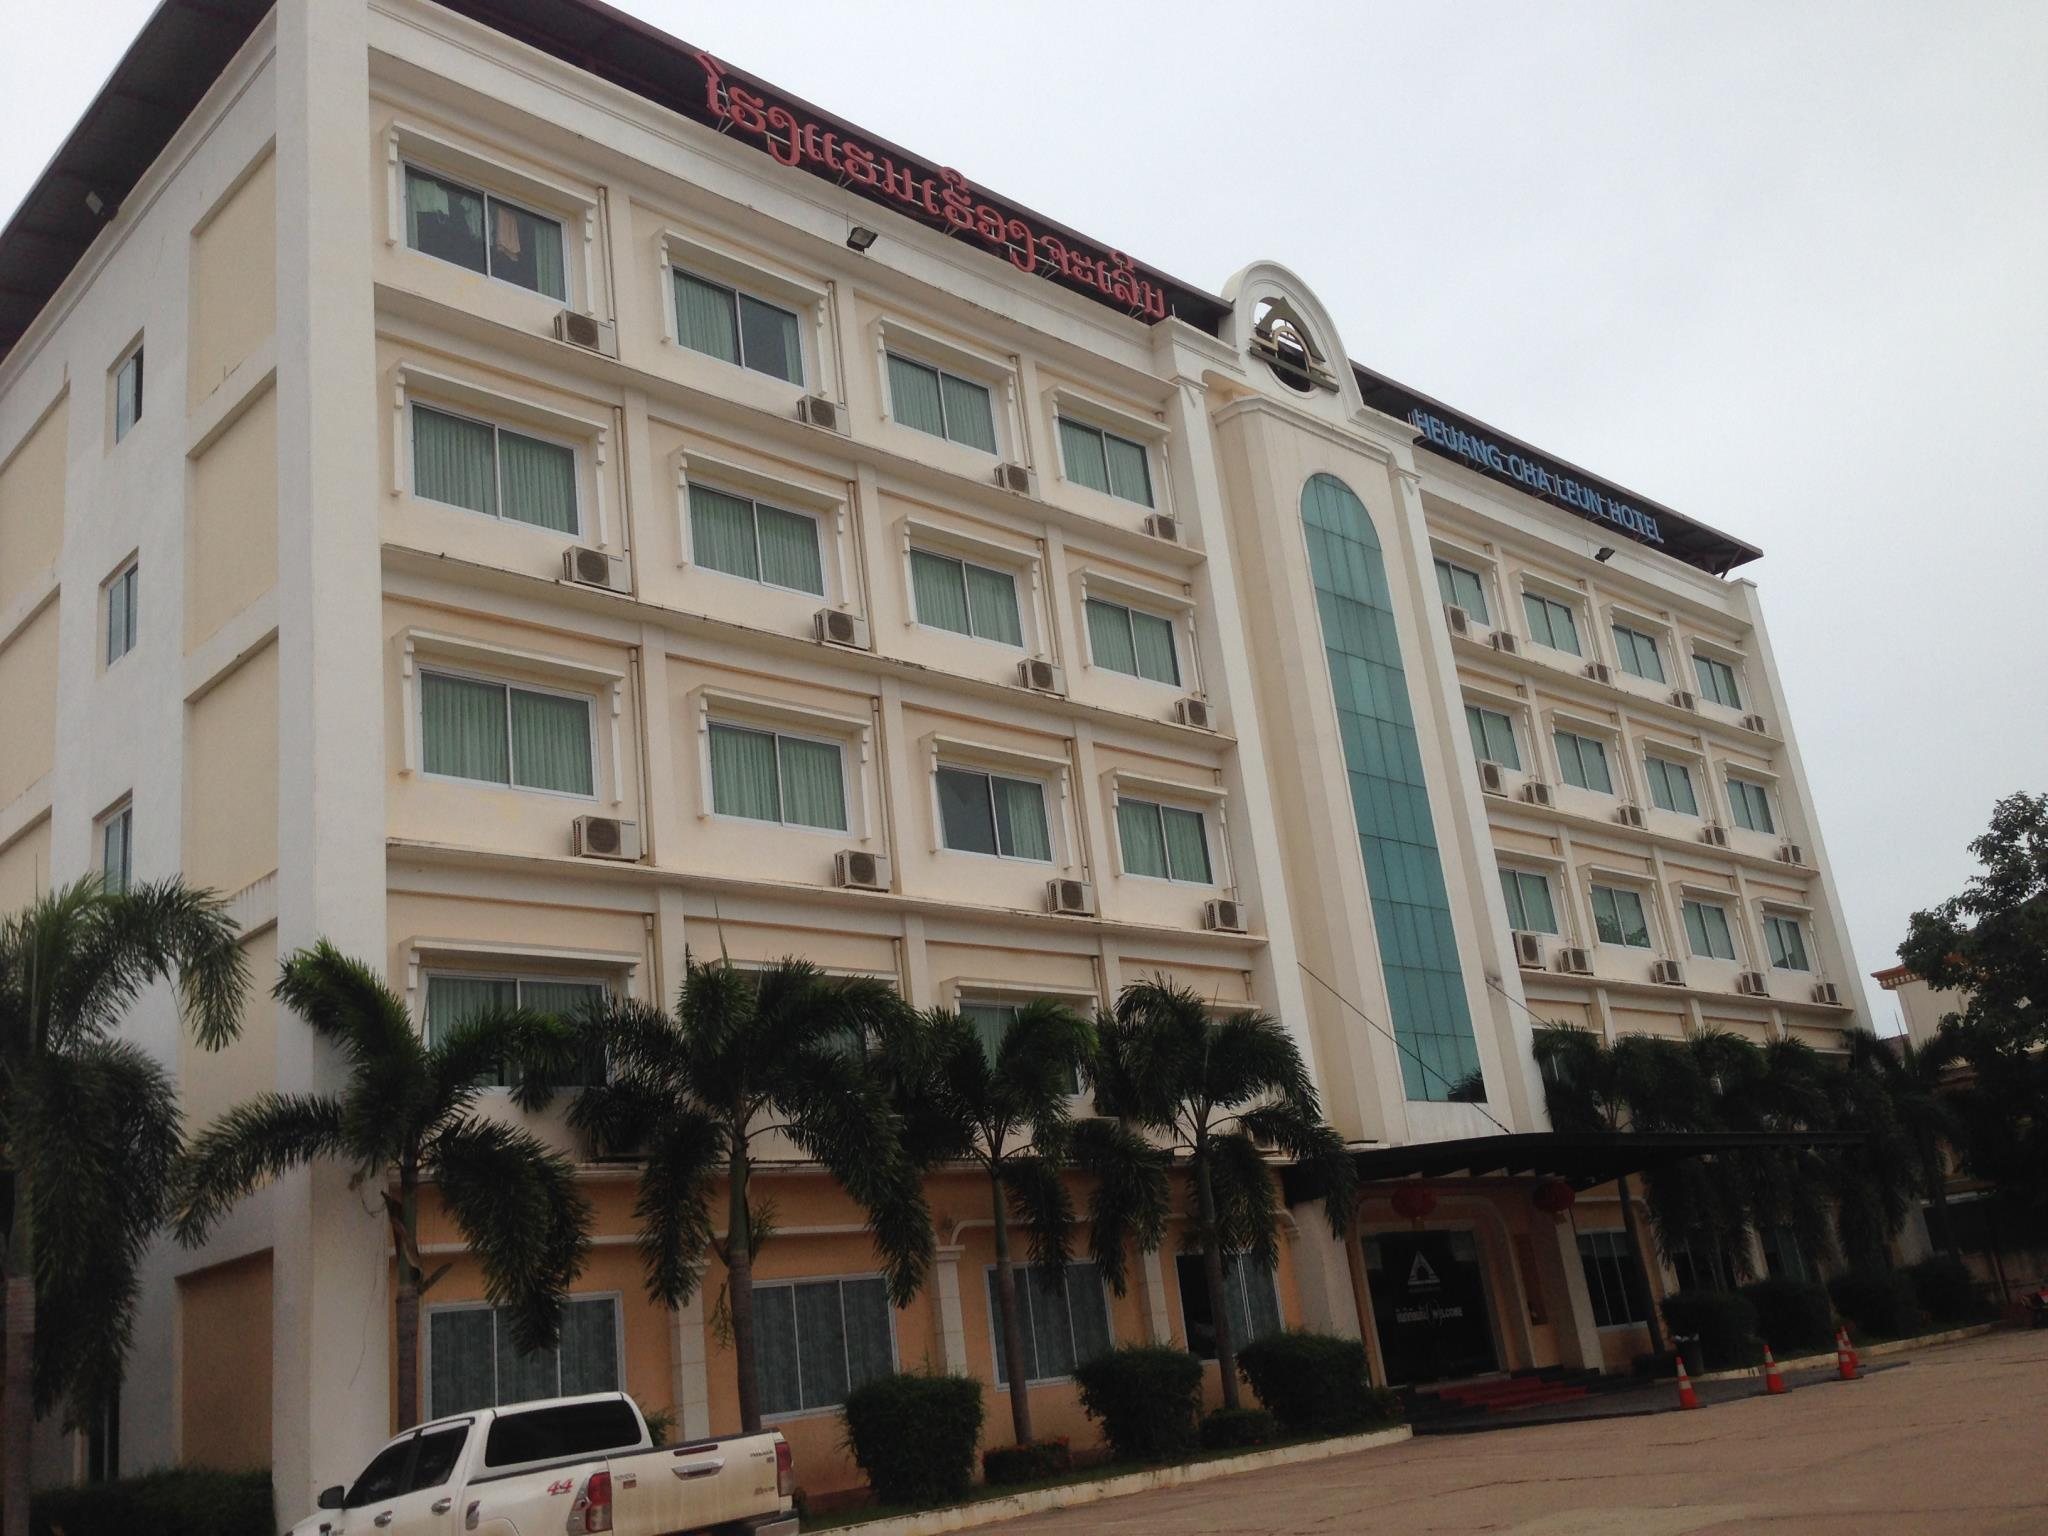 Vientiane heuang chaleun hotel in laos asia for Laos hotels 5 star